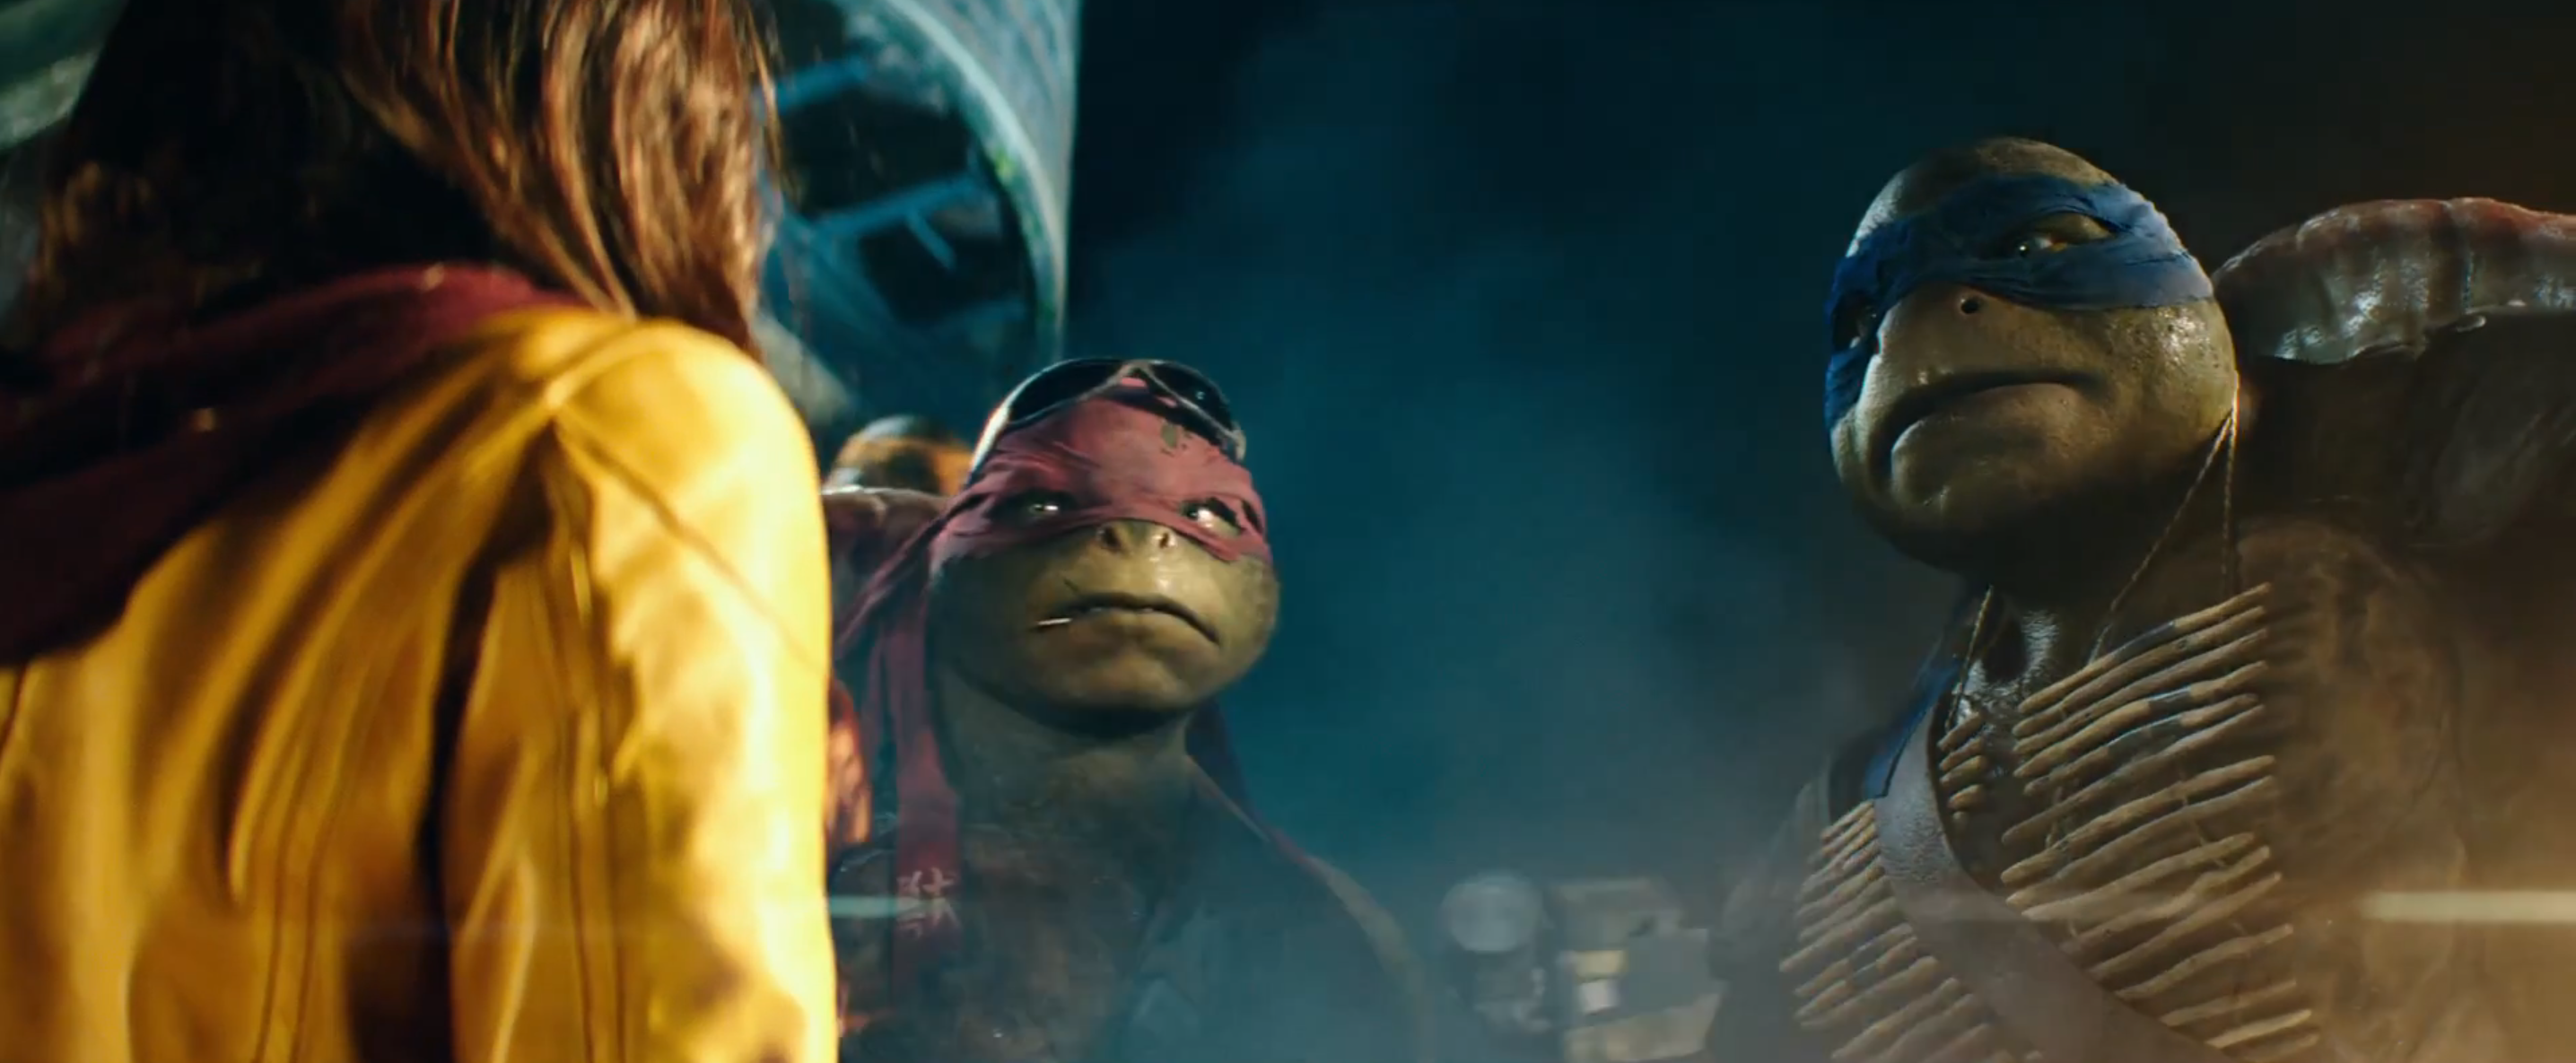 Review Teenage Mutant Ninja Turtles 2014 I Am Your Target